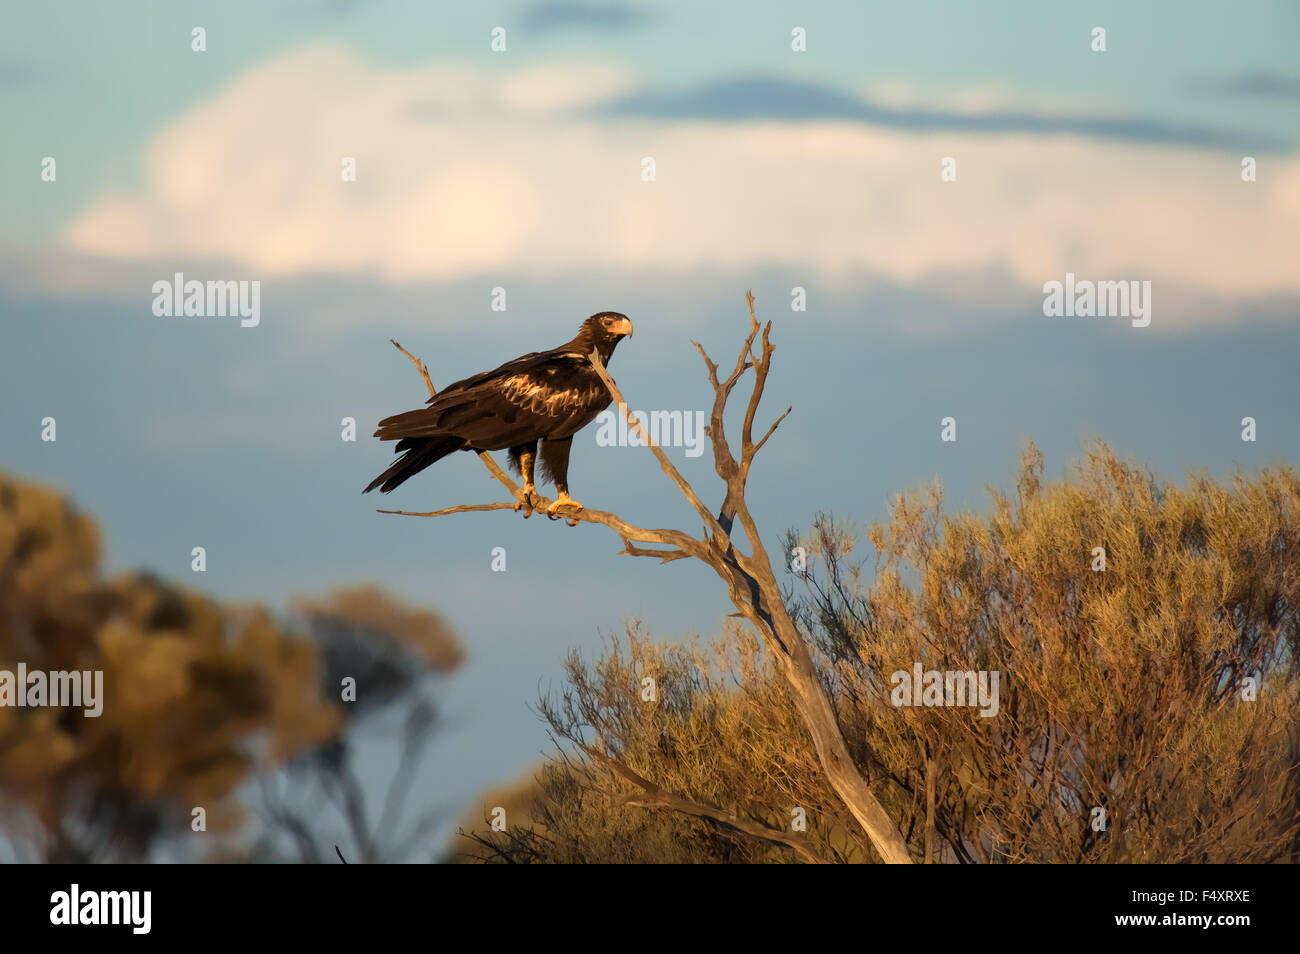 Wedge-tailed Eagle (Aquila audax) Great Victoria Desert, Australia. - Stock Image